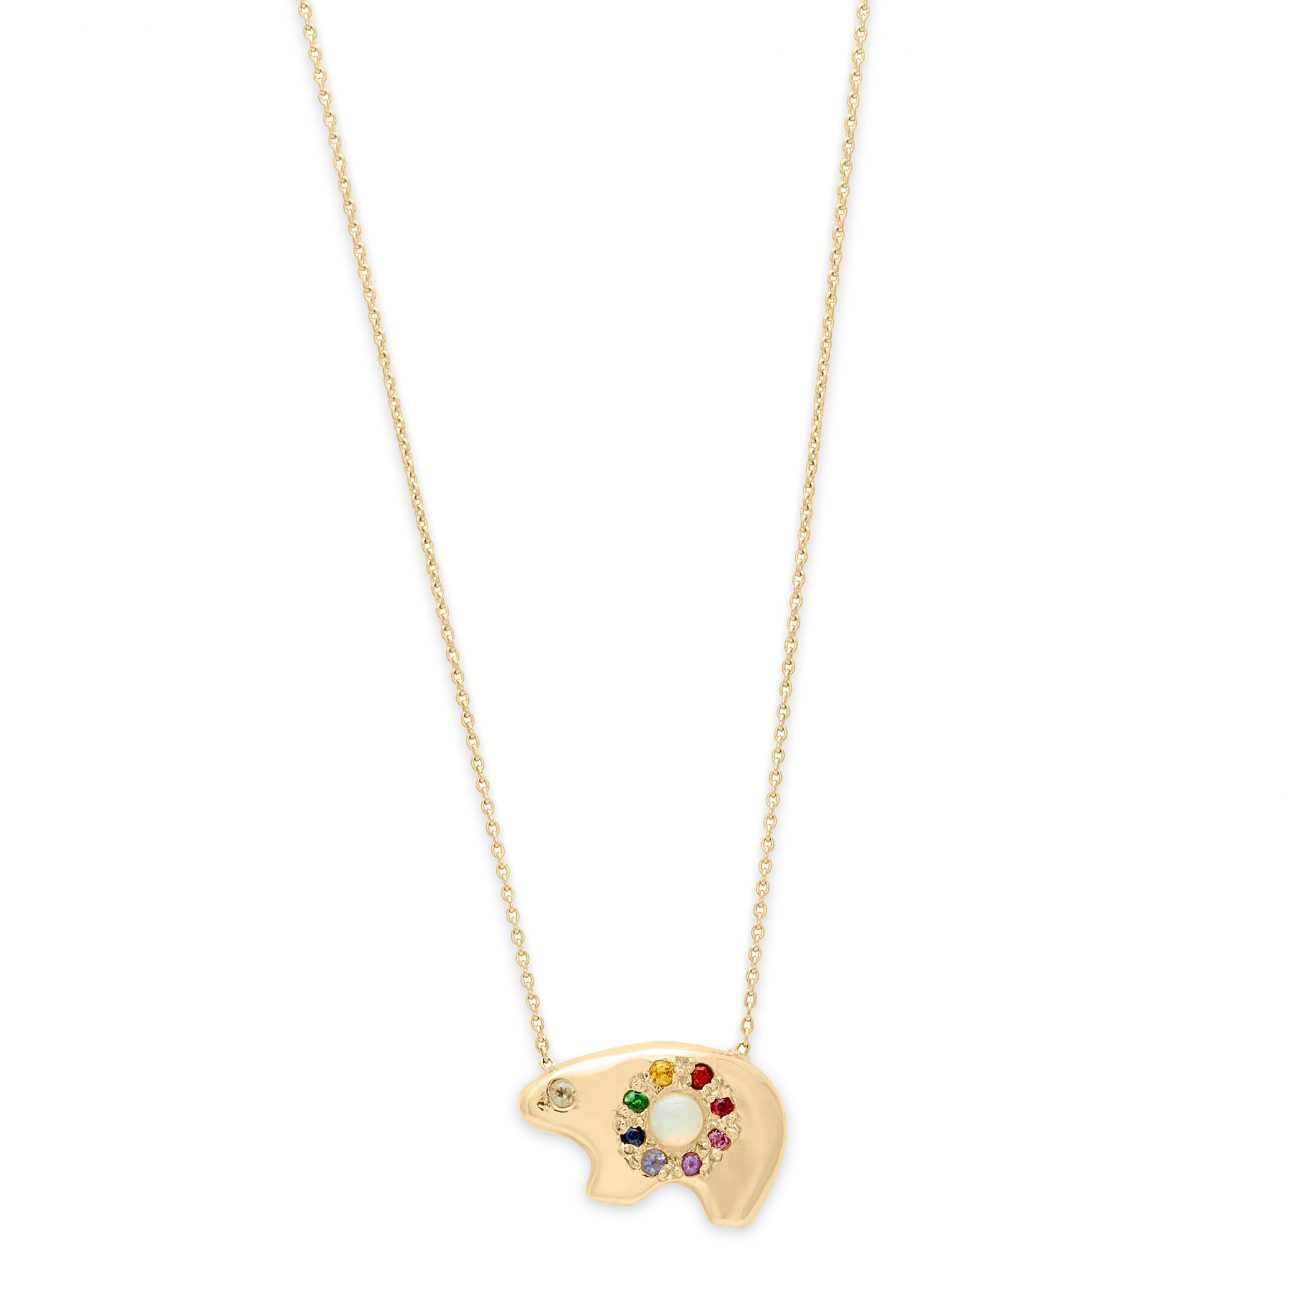 Necklace_OpalRainbowBear